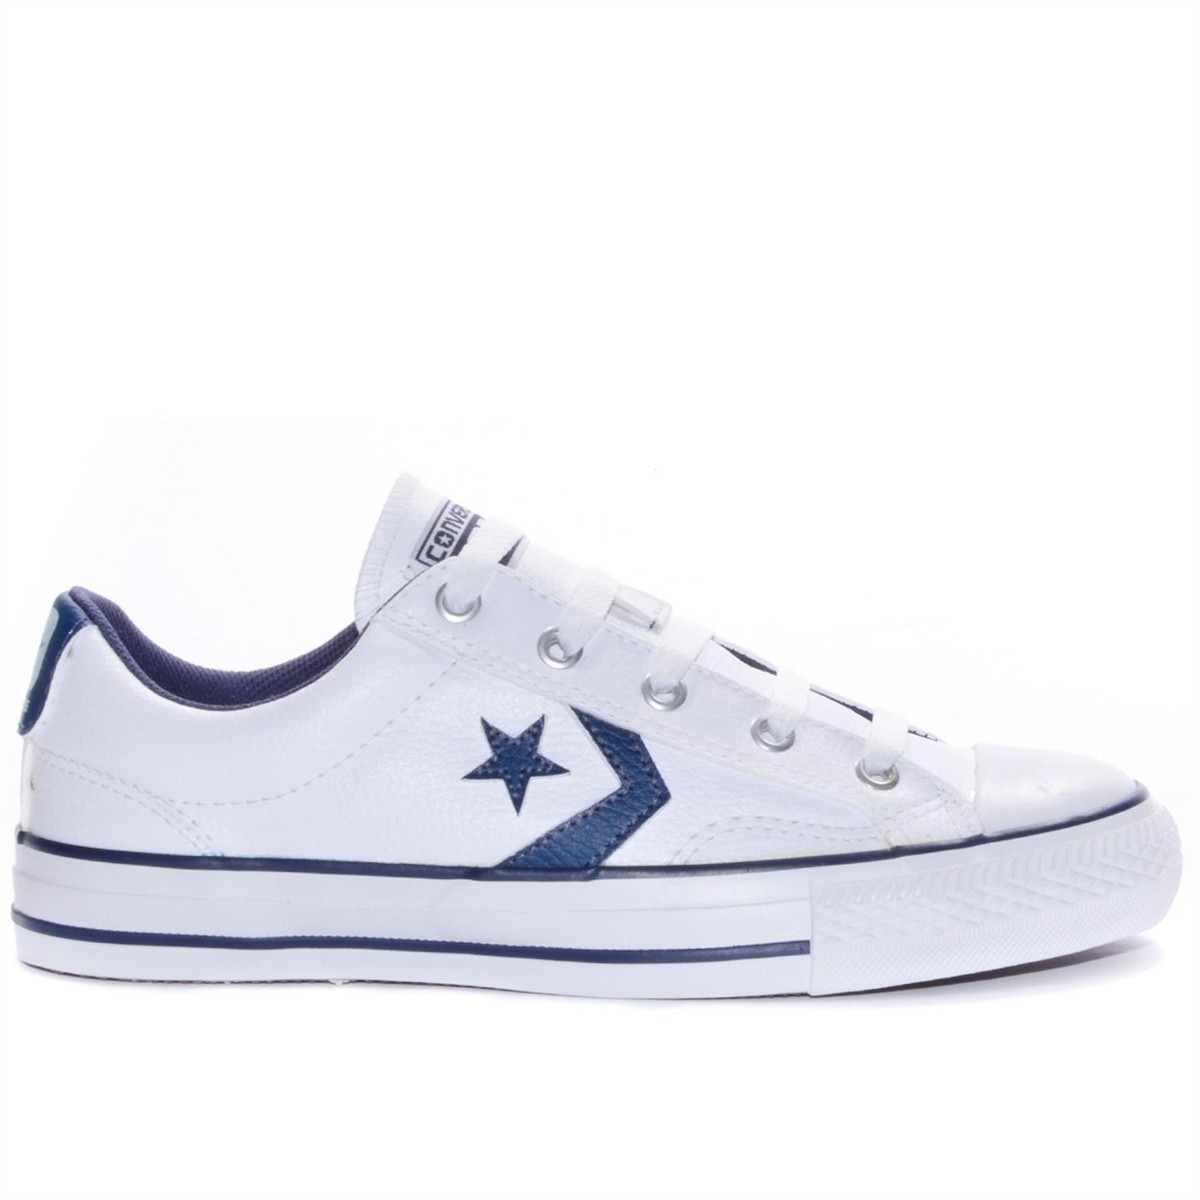 5eb98a921f0 tenis all star player masculino original couro - co353161. Carregando zoom.